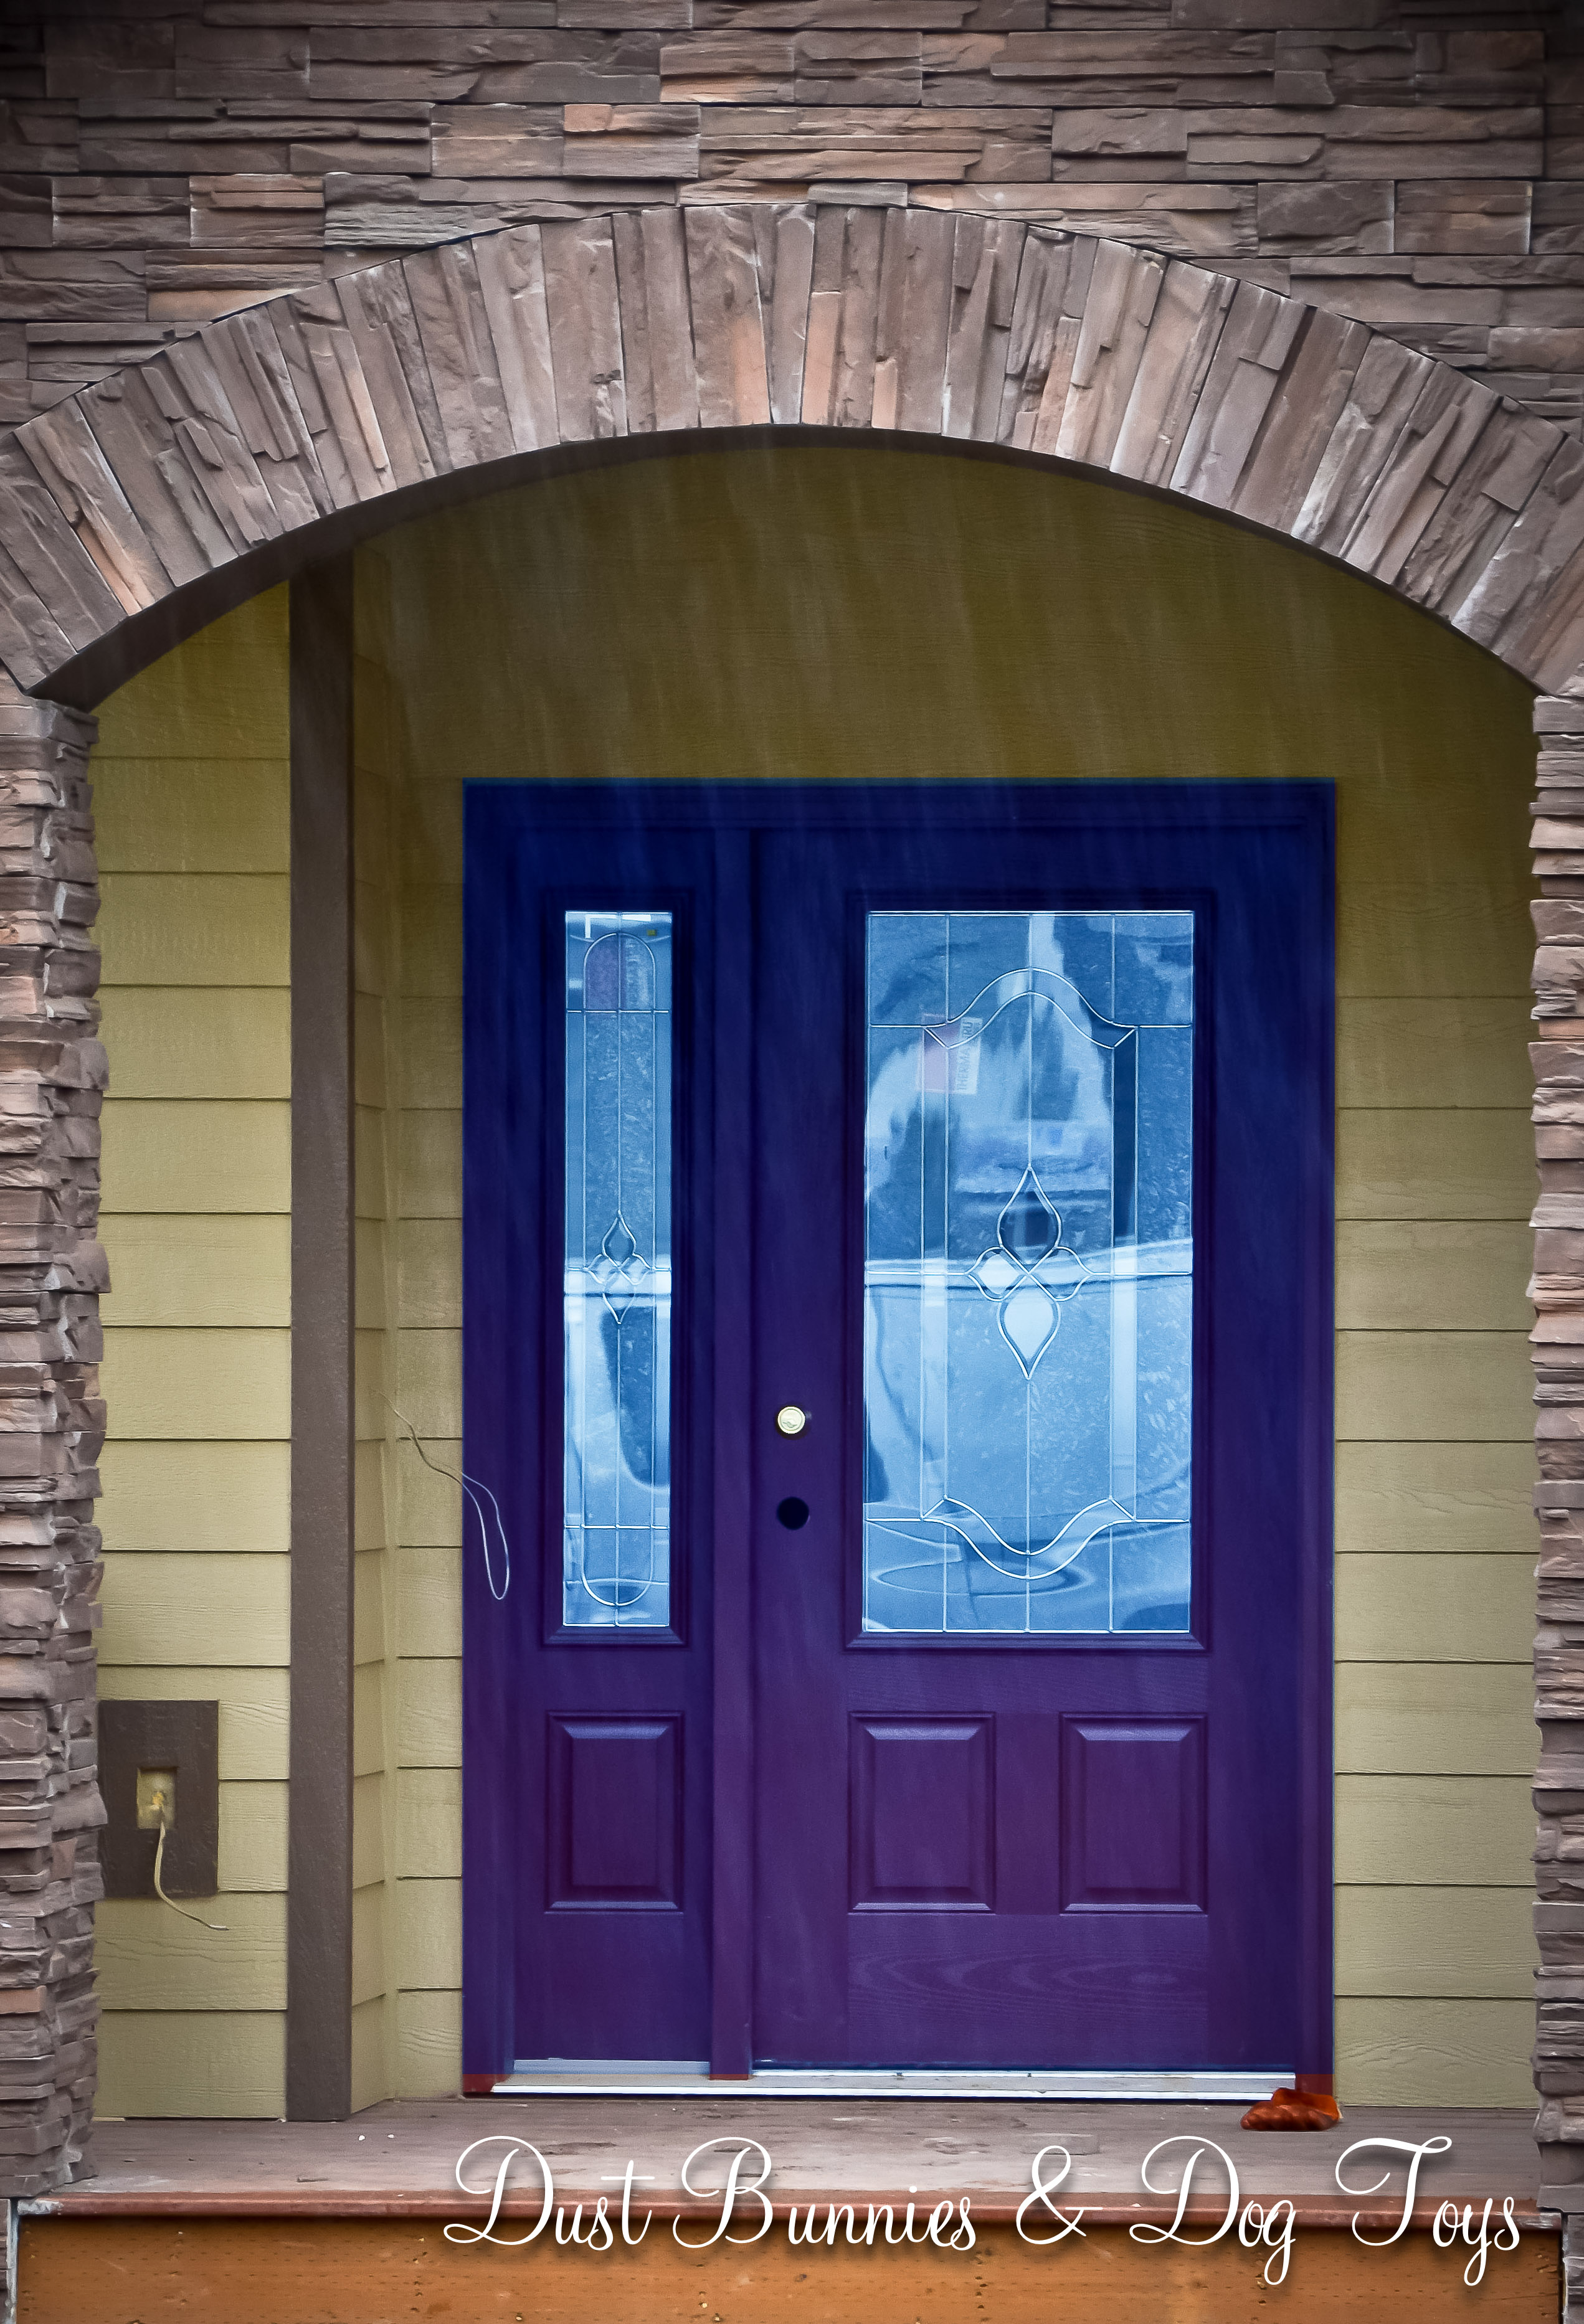 3732 #246CA7 Door1 wallpaper Purple Front Doors 47052543